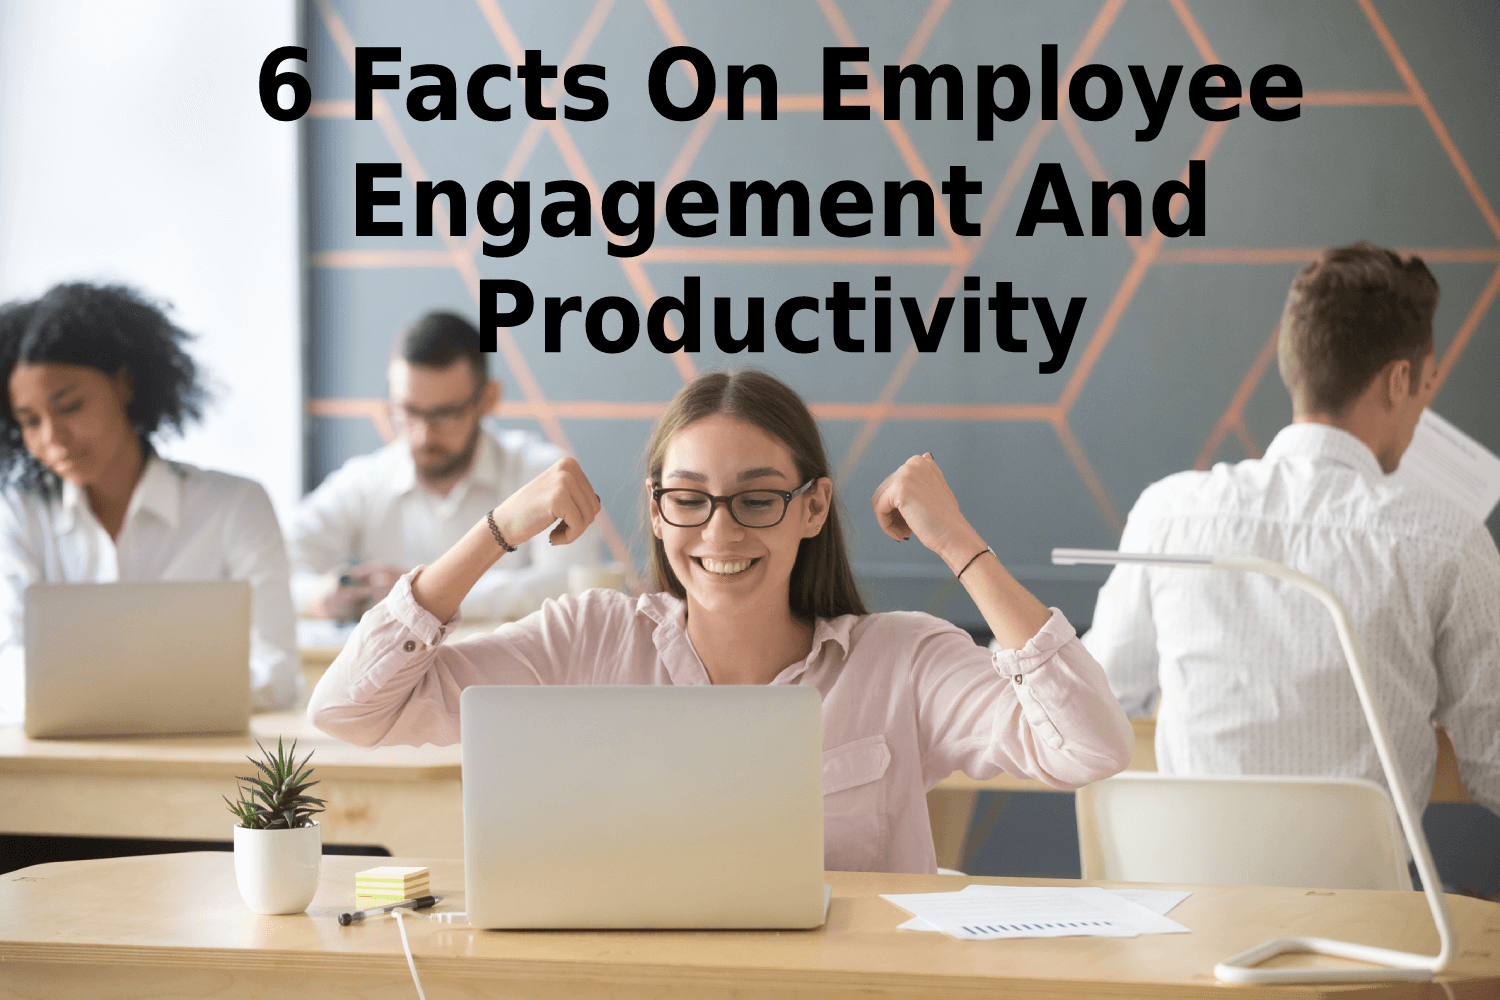 6 Facts On Employee Engagement